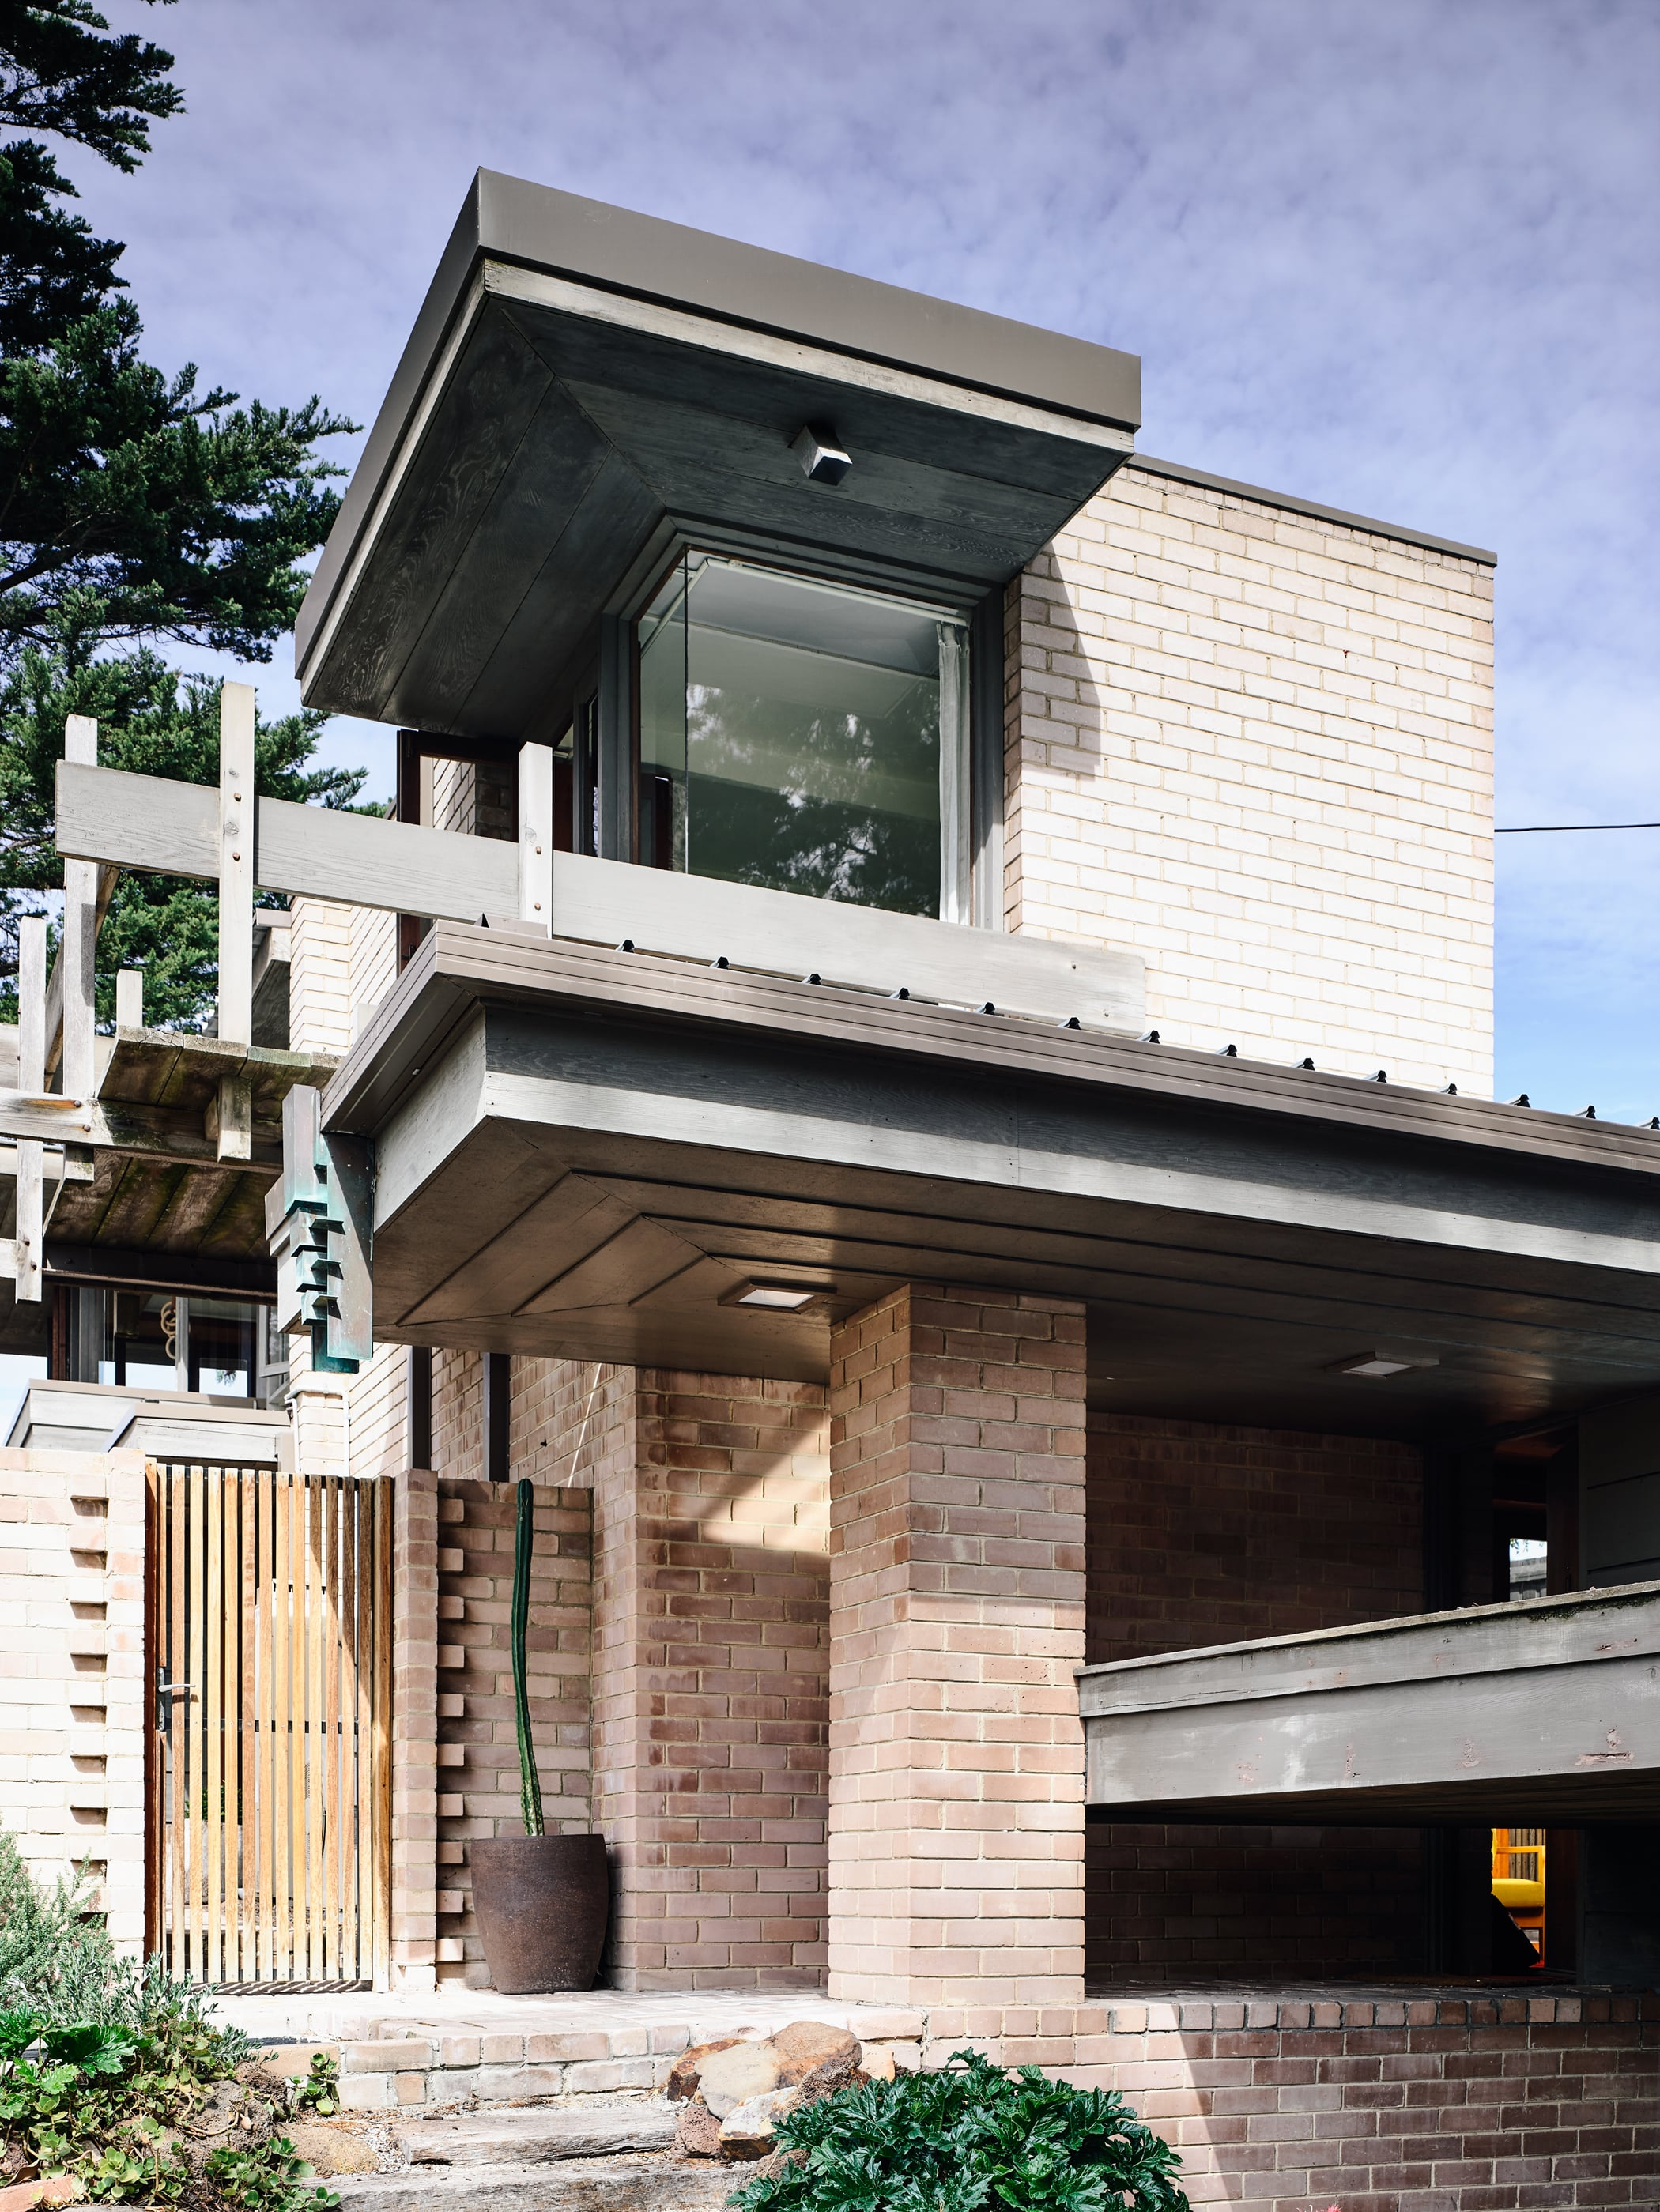 Gallery Of The Godsell House By David Godsell Local Australian Architecture & Design Beaumaris, Vic Image 1